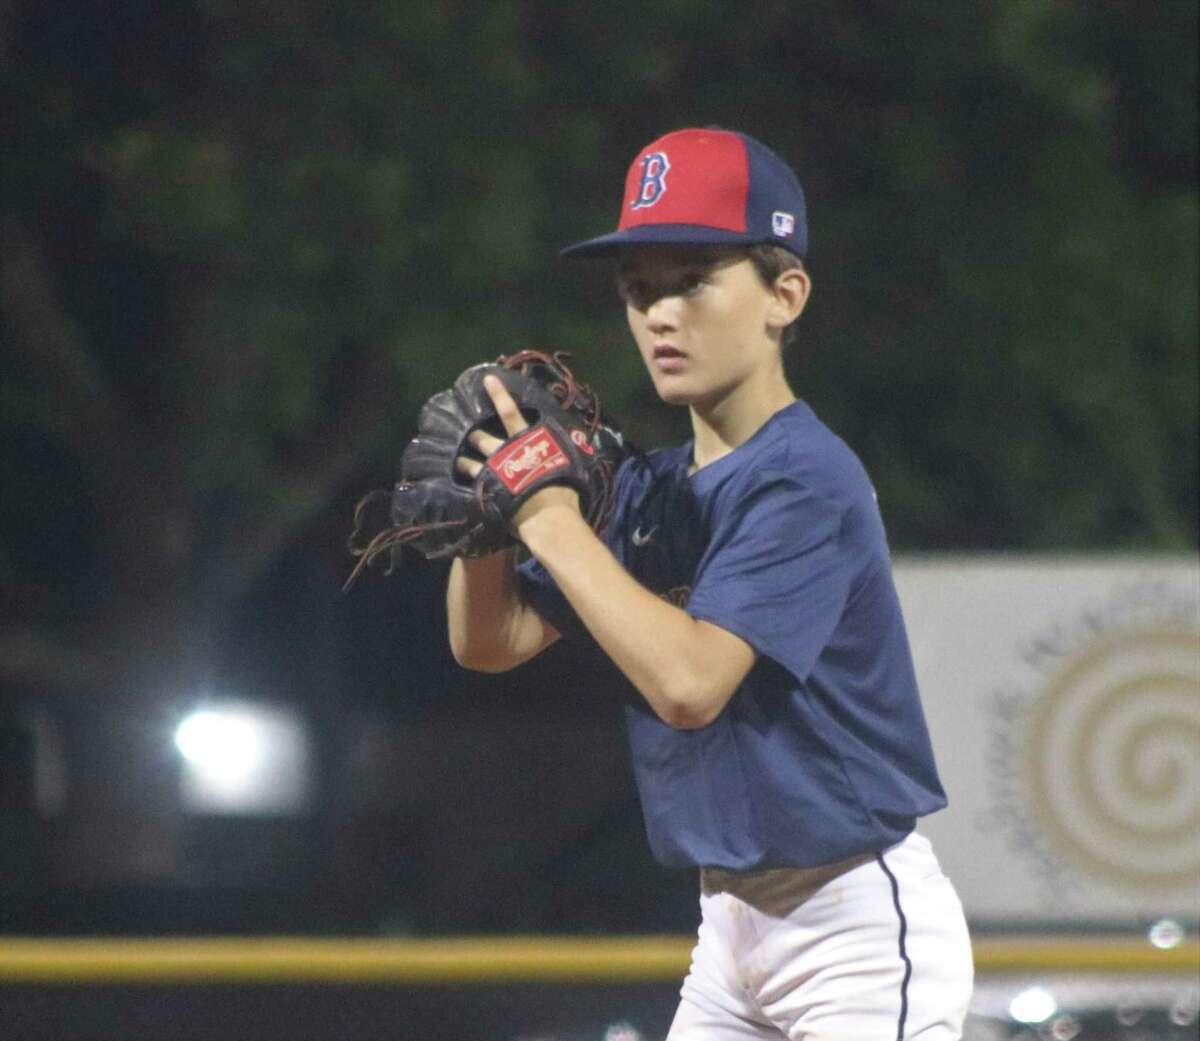 Jordan Foret turned in three innings of no-hit ball, while striking out five during the 8-3 win Wednesday night at Bayside Little League's complex.